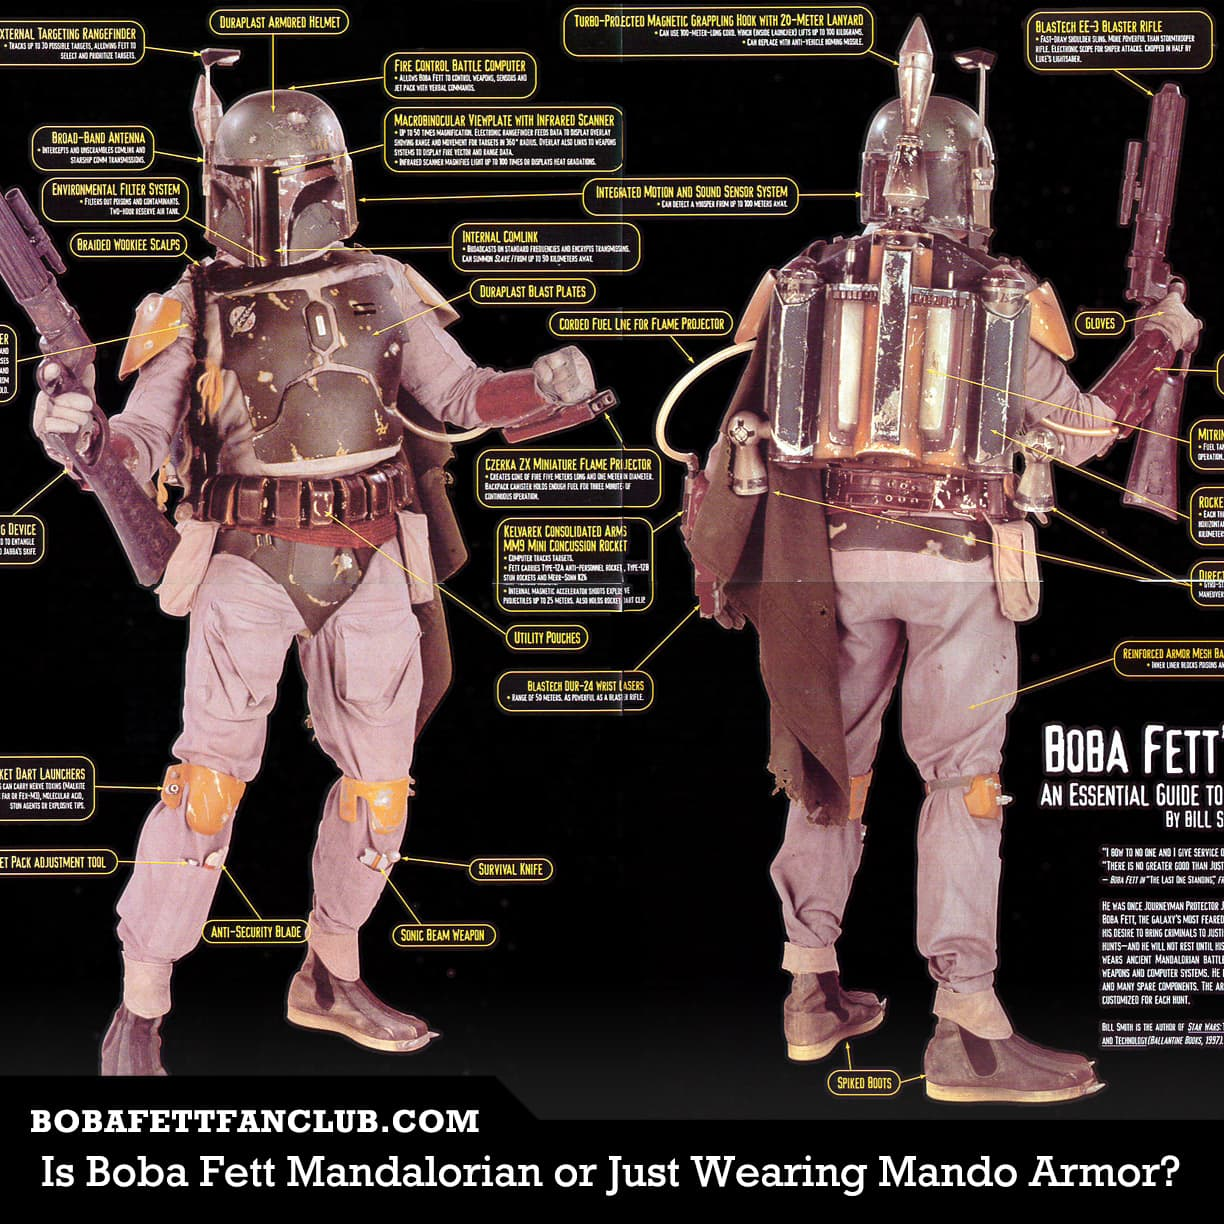 Is Boba Fett a Mandalorian or Does He Just Wear Mandalorian Armor?